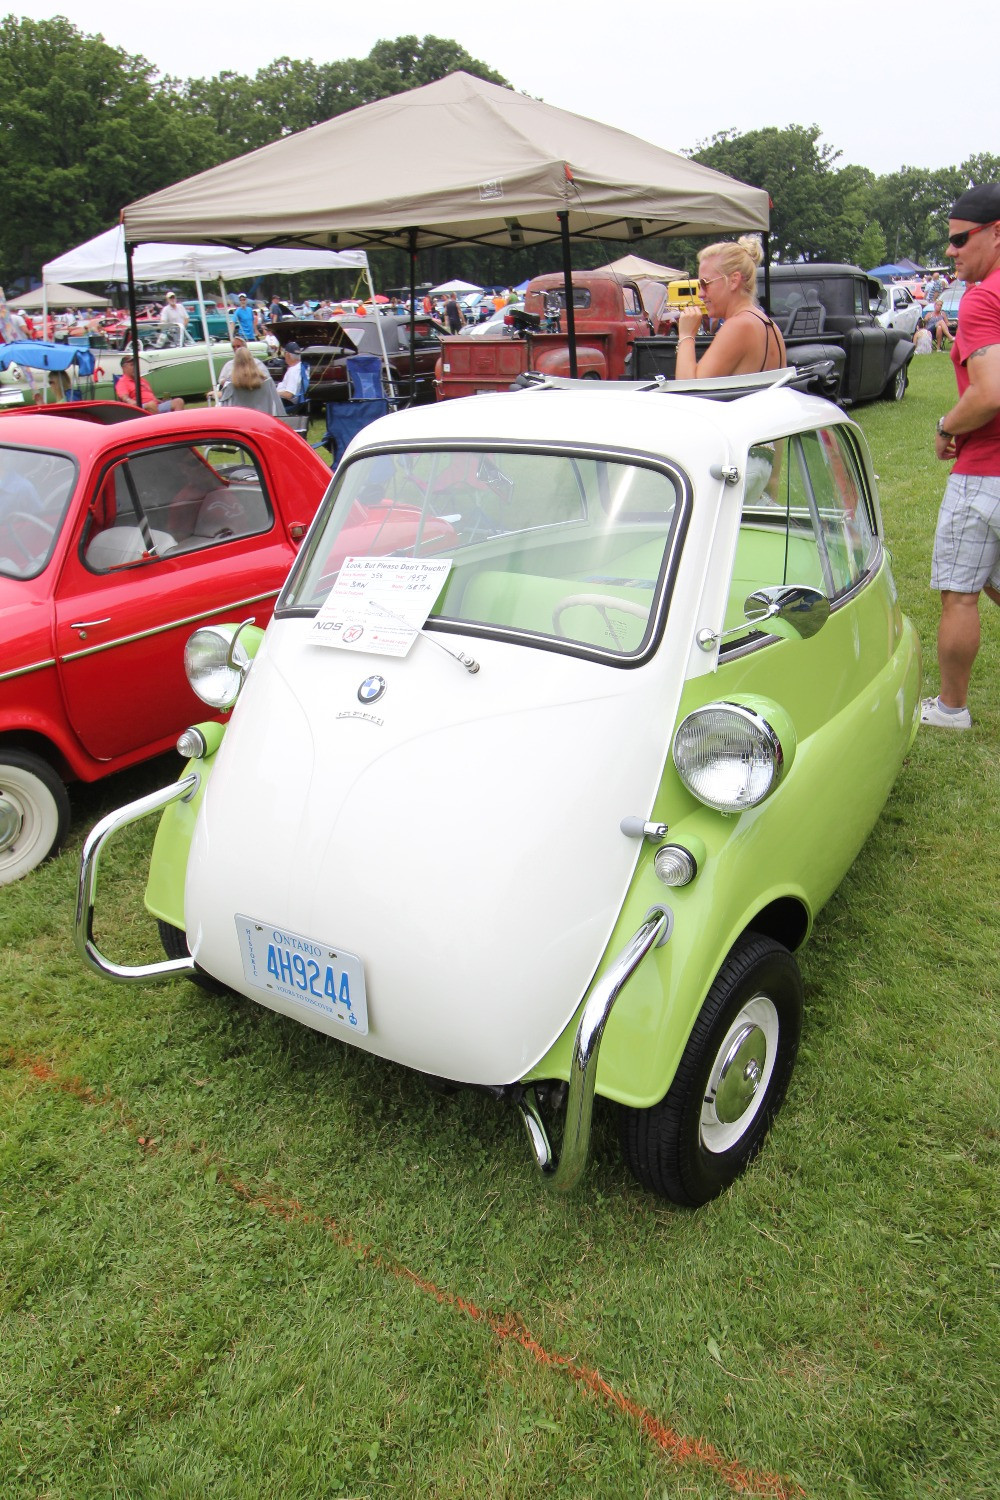 1958 BMW Isetta - at Sarnia Street Machines Car Show